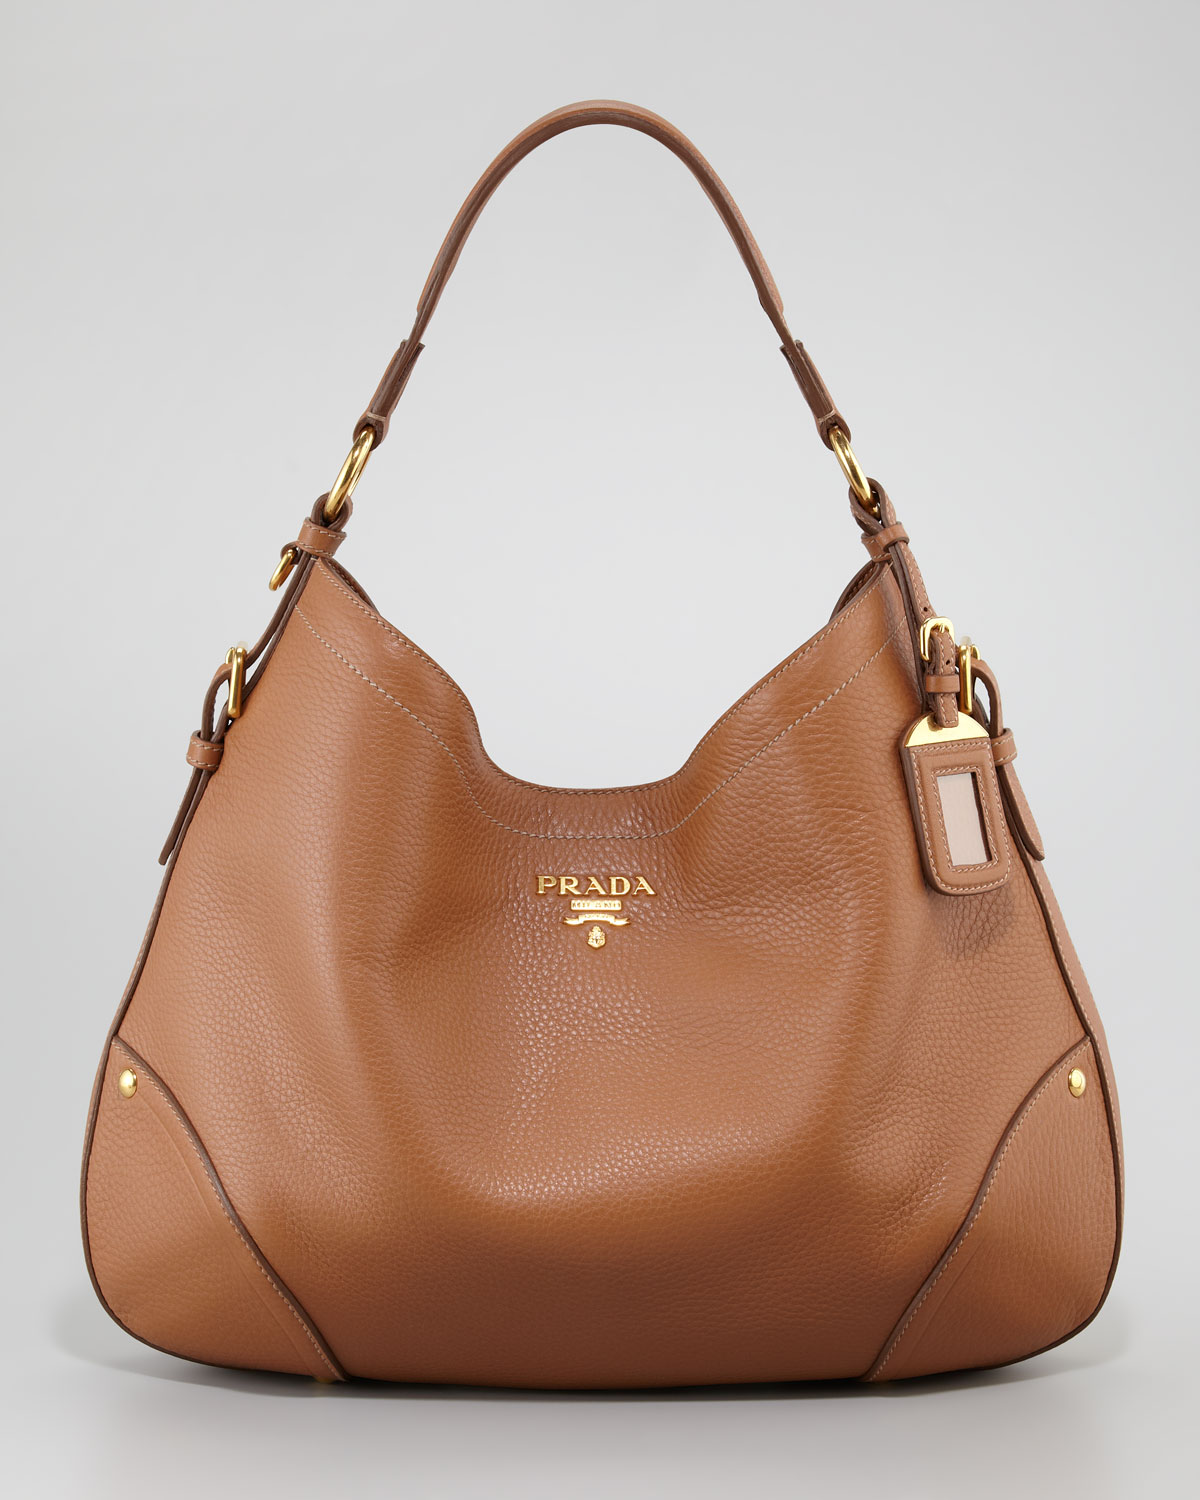 Prada Vitello Daino Snap Hobo Bag in Brown - Lyst 9409ec4b3b